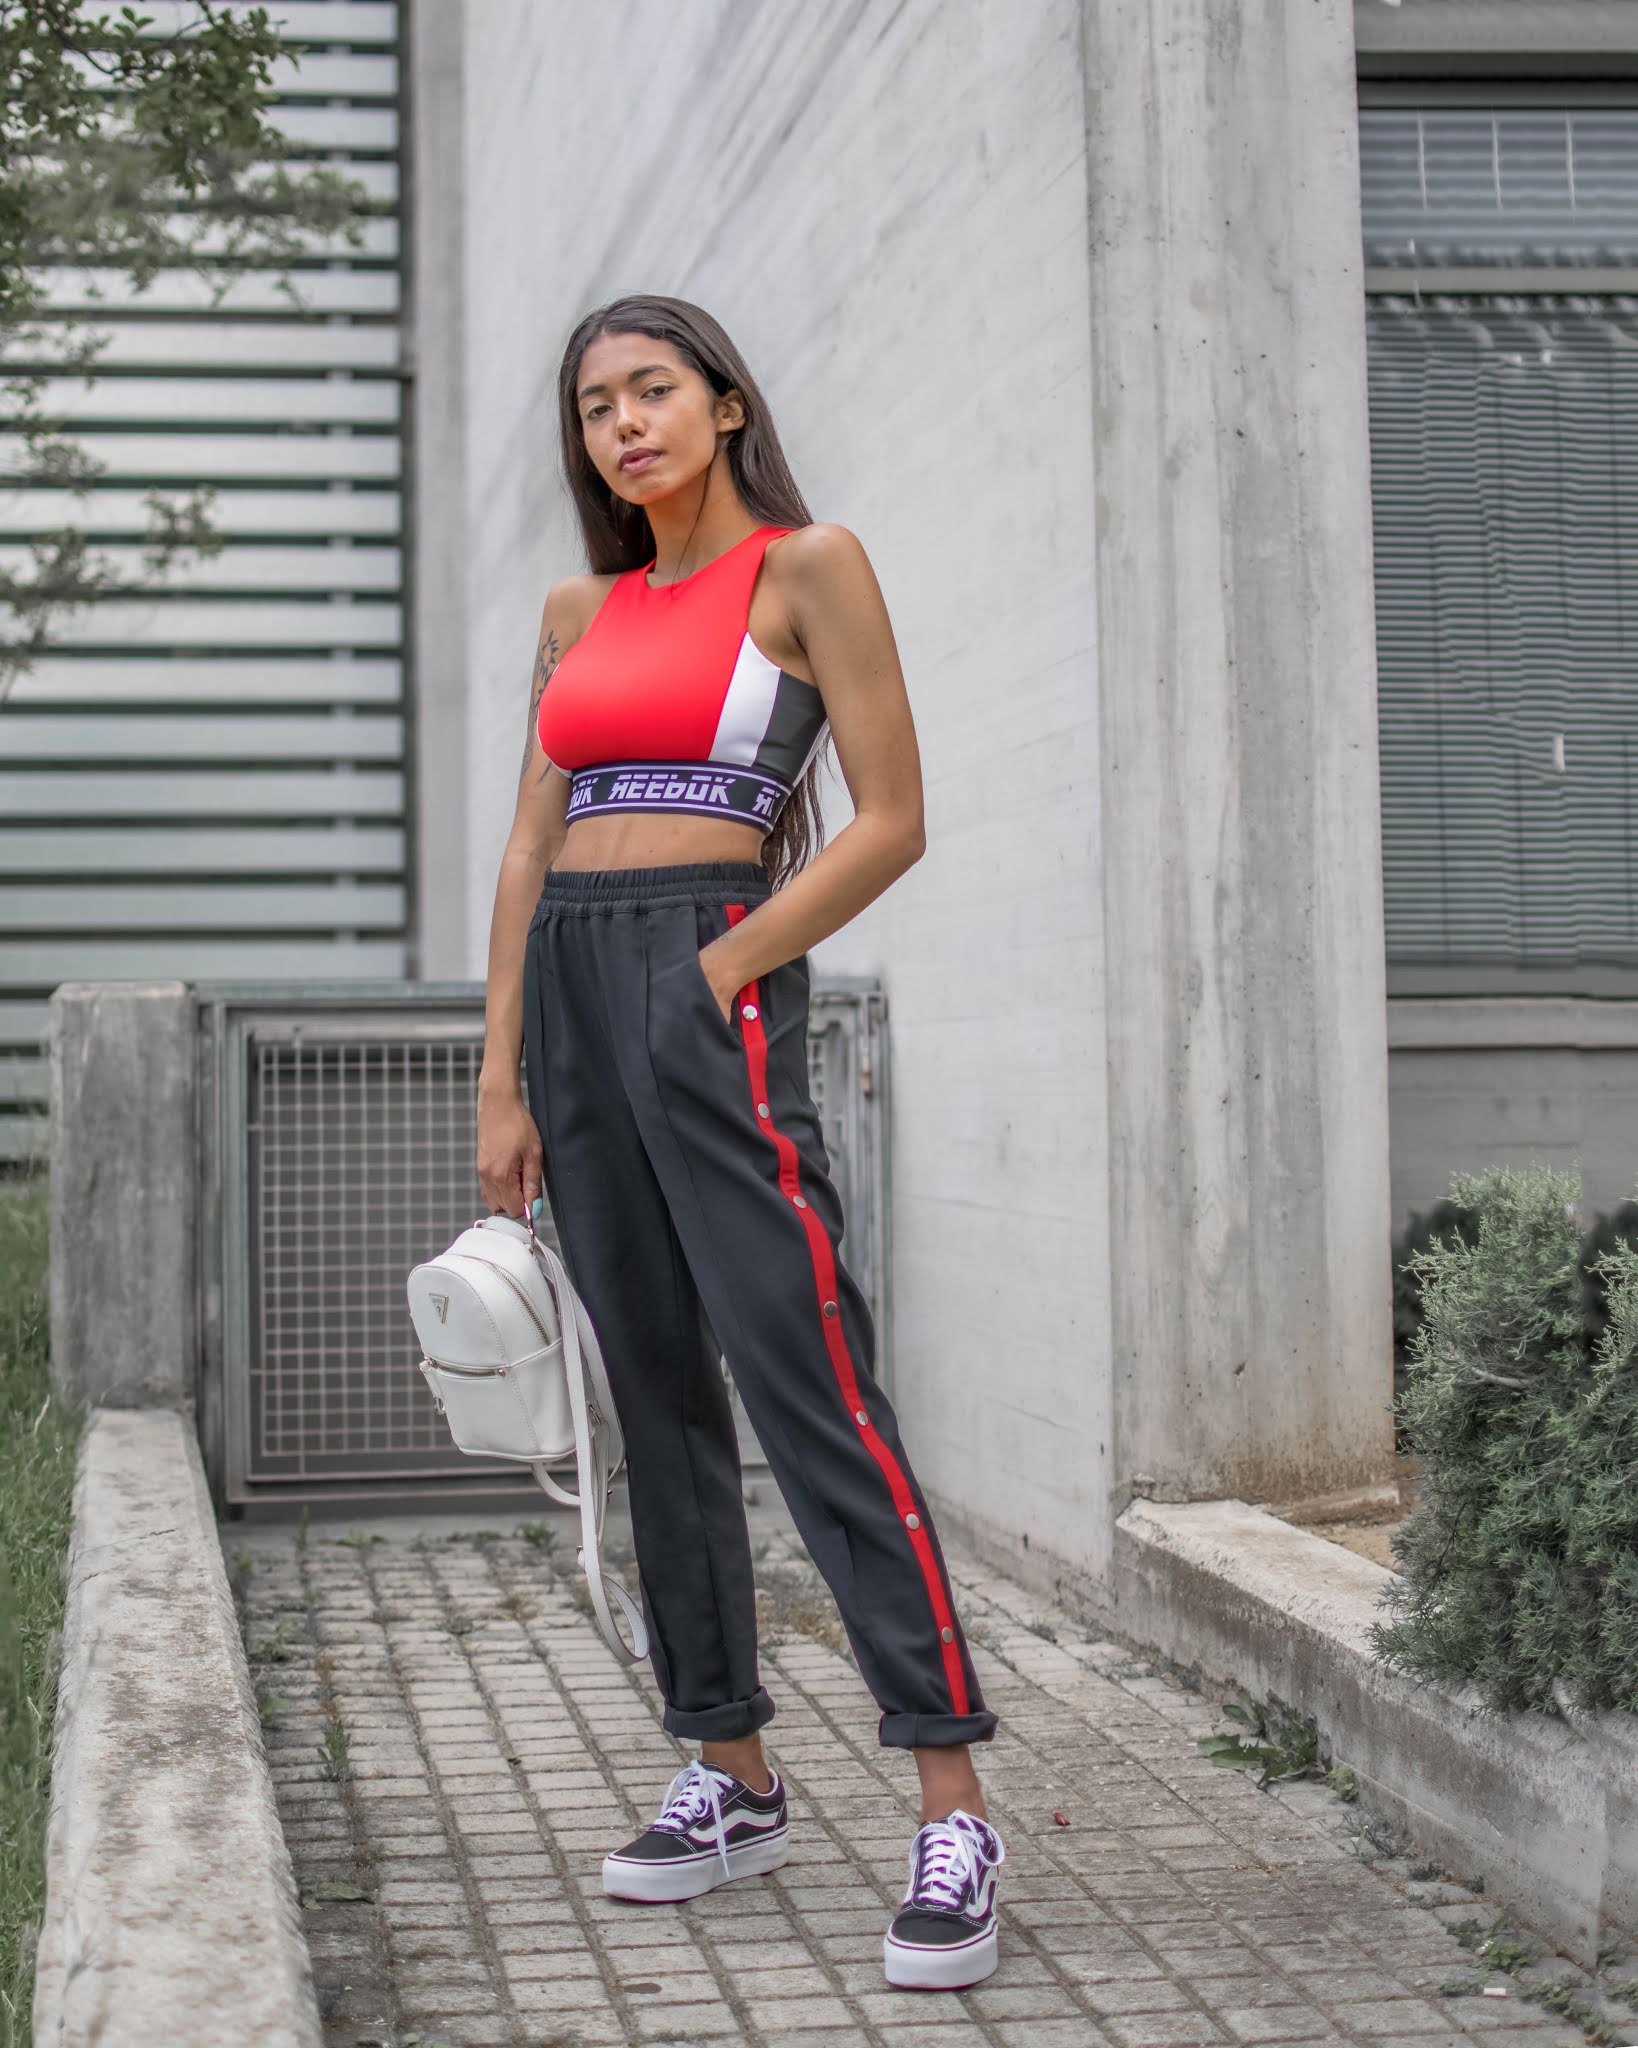 streetwear athleisure outfit inspiration